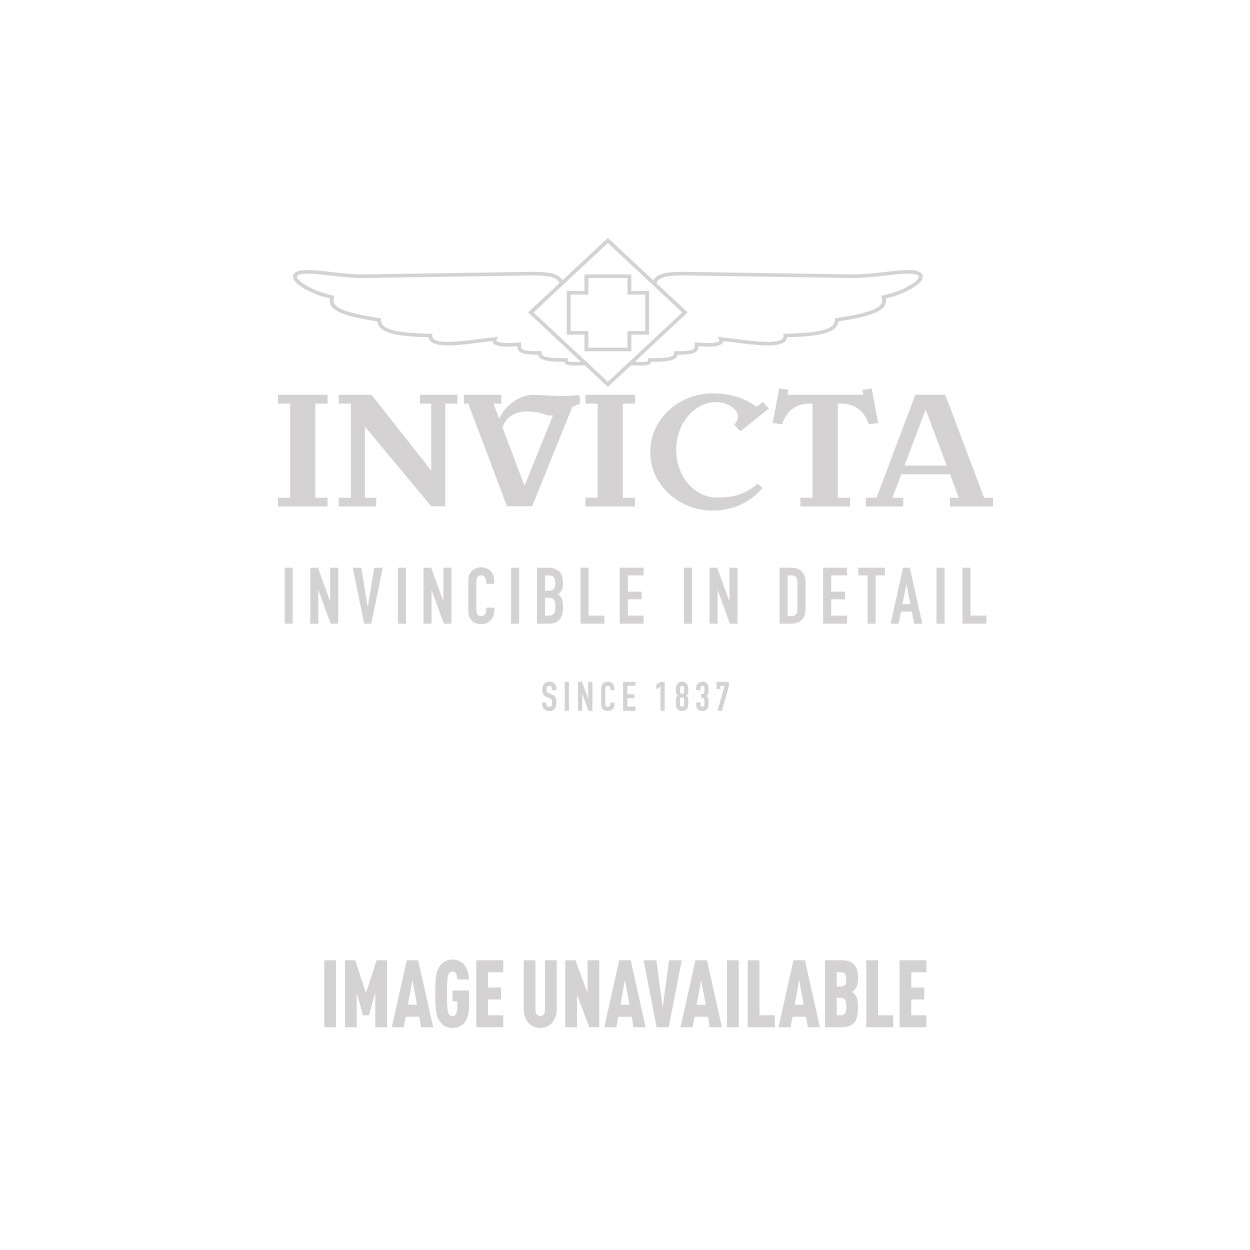 Invicta S1 Rally Quartz Watch - Stainless Steel case with Light Brown tone Leather band - Model 16009